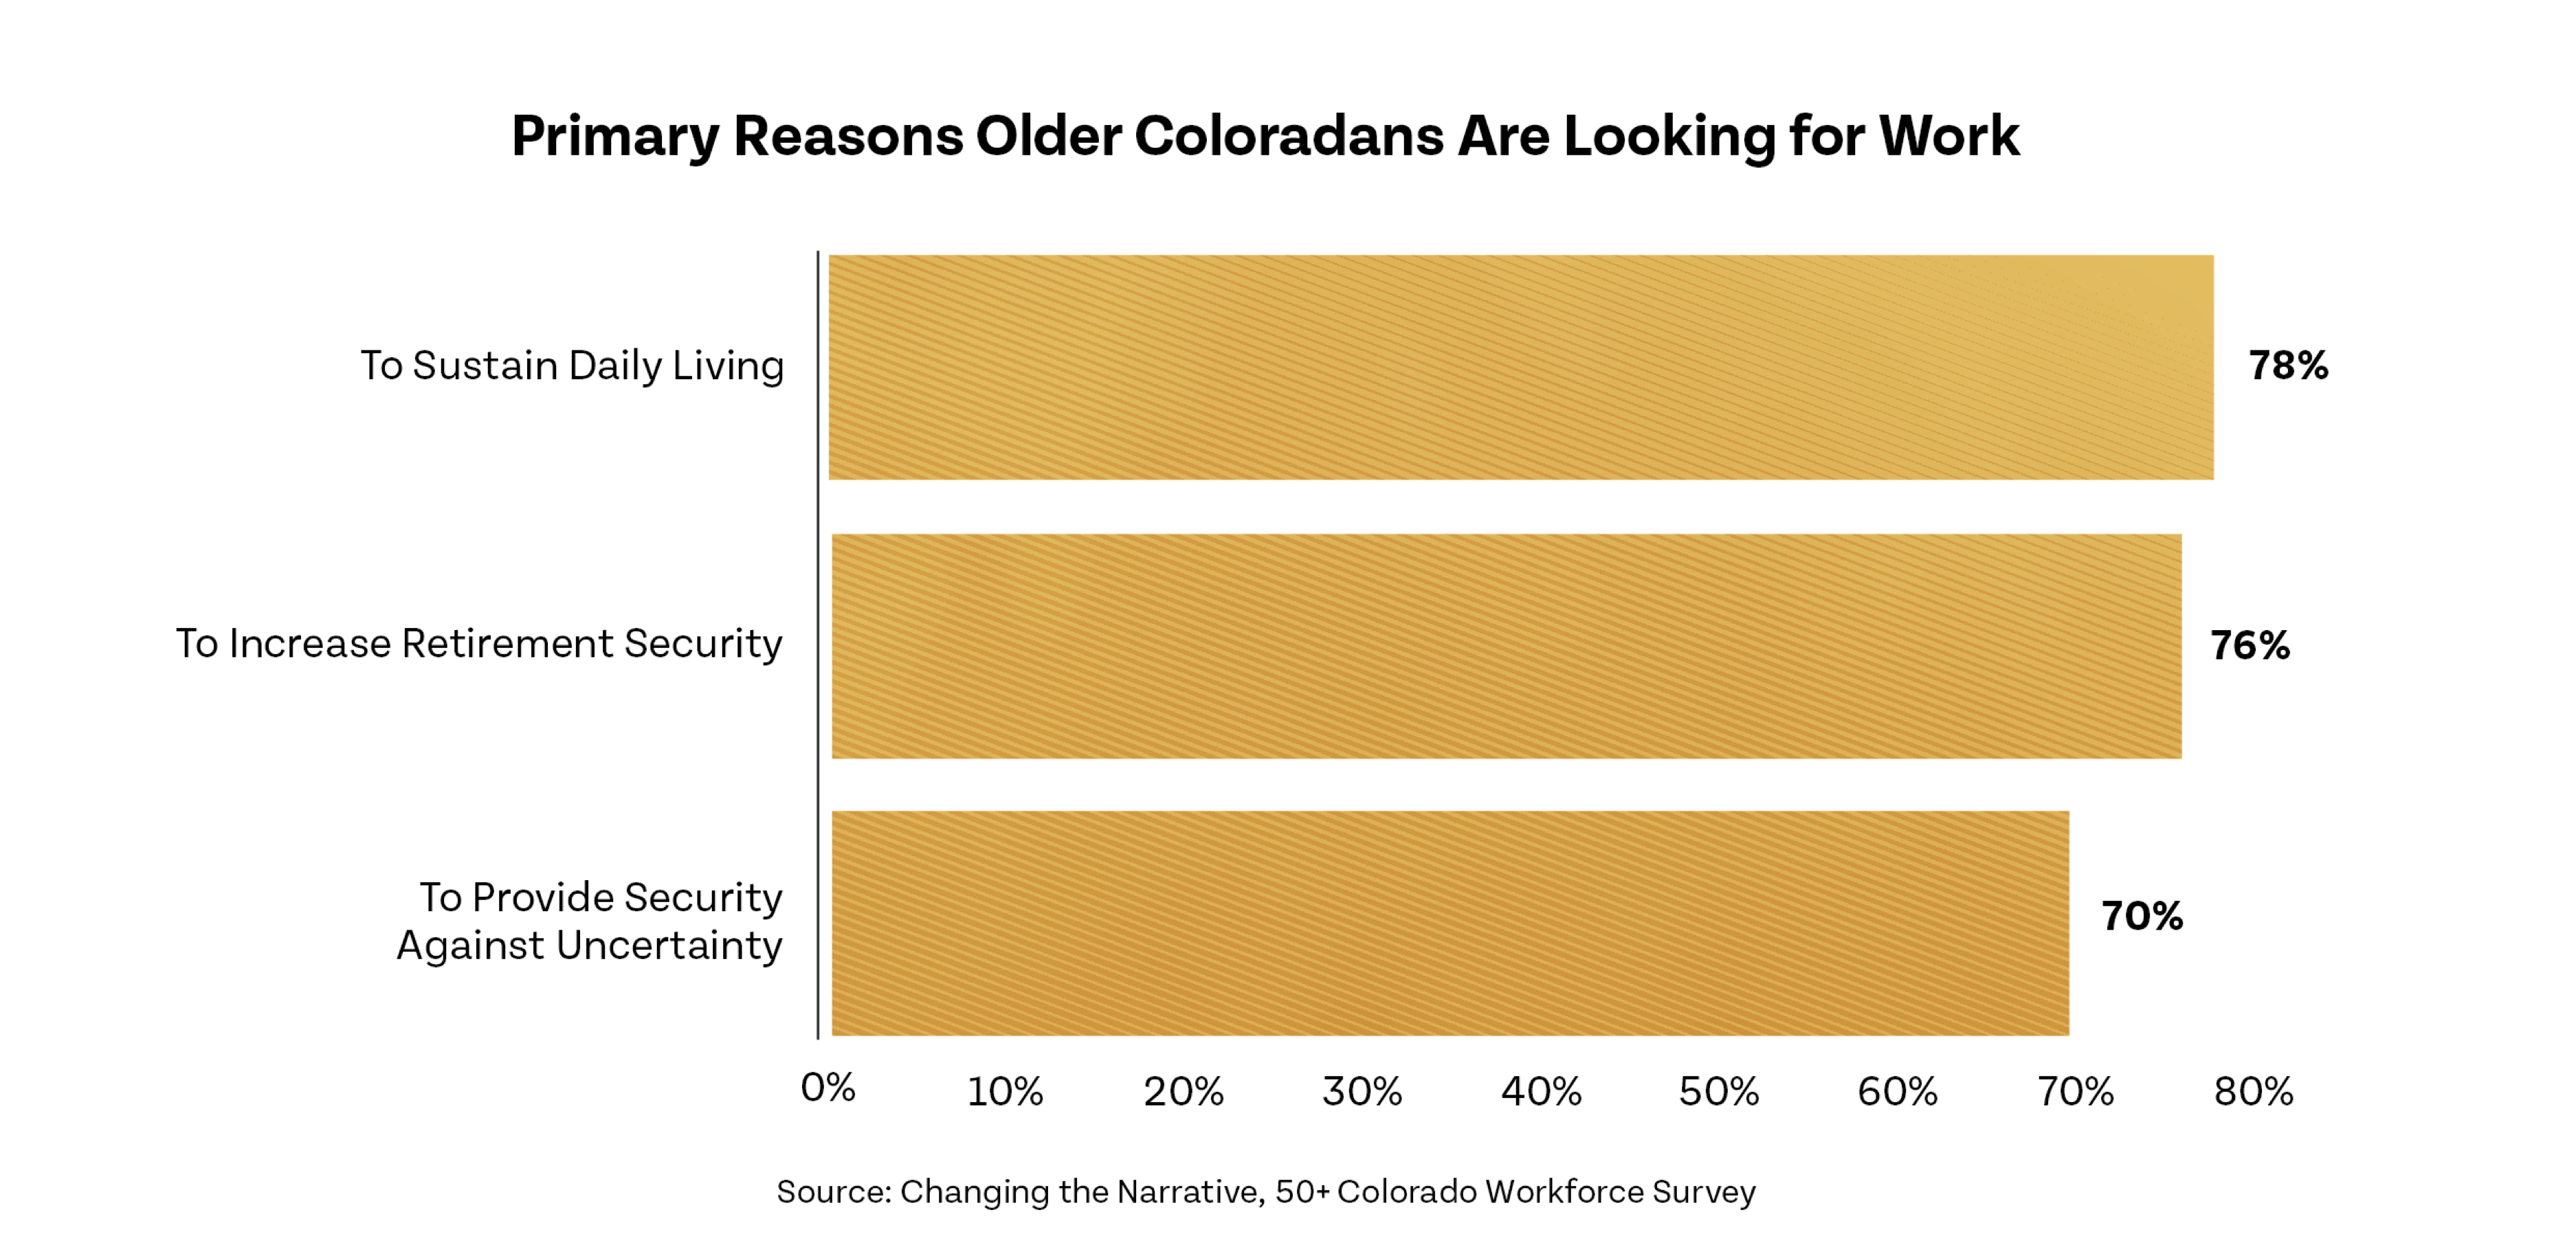 Primary Reasons Older Coloradans Are Looking for Work (bar chart with yellow bars)